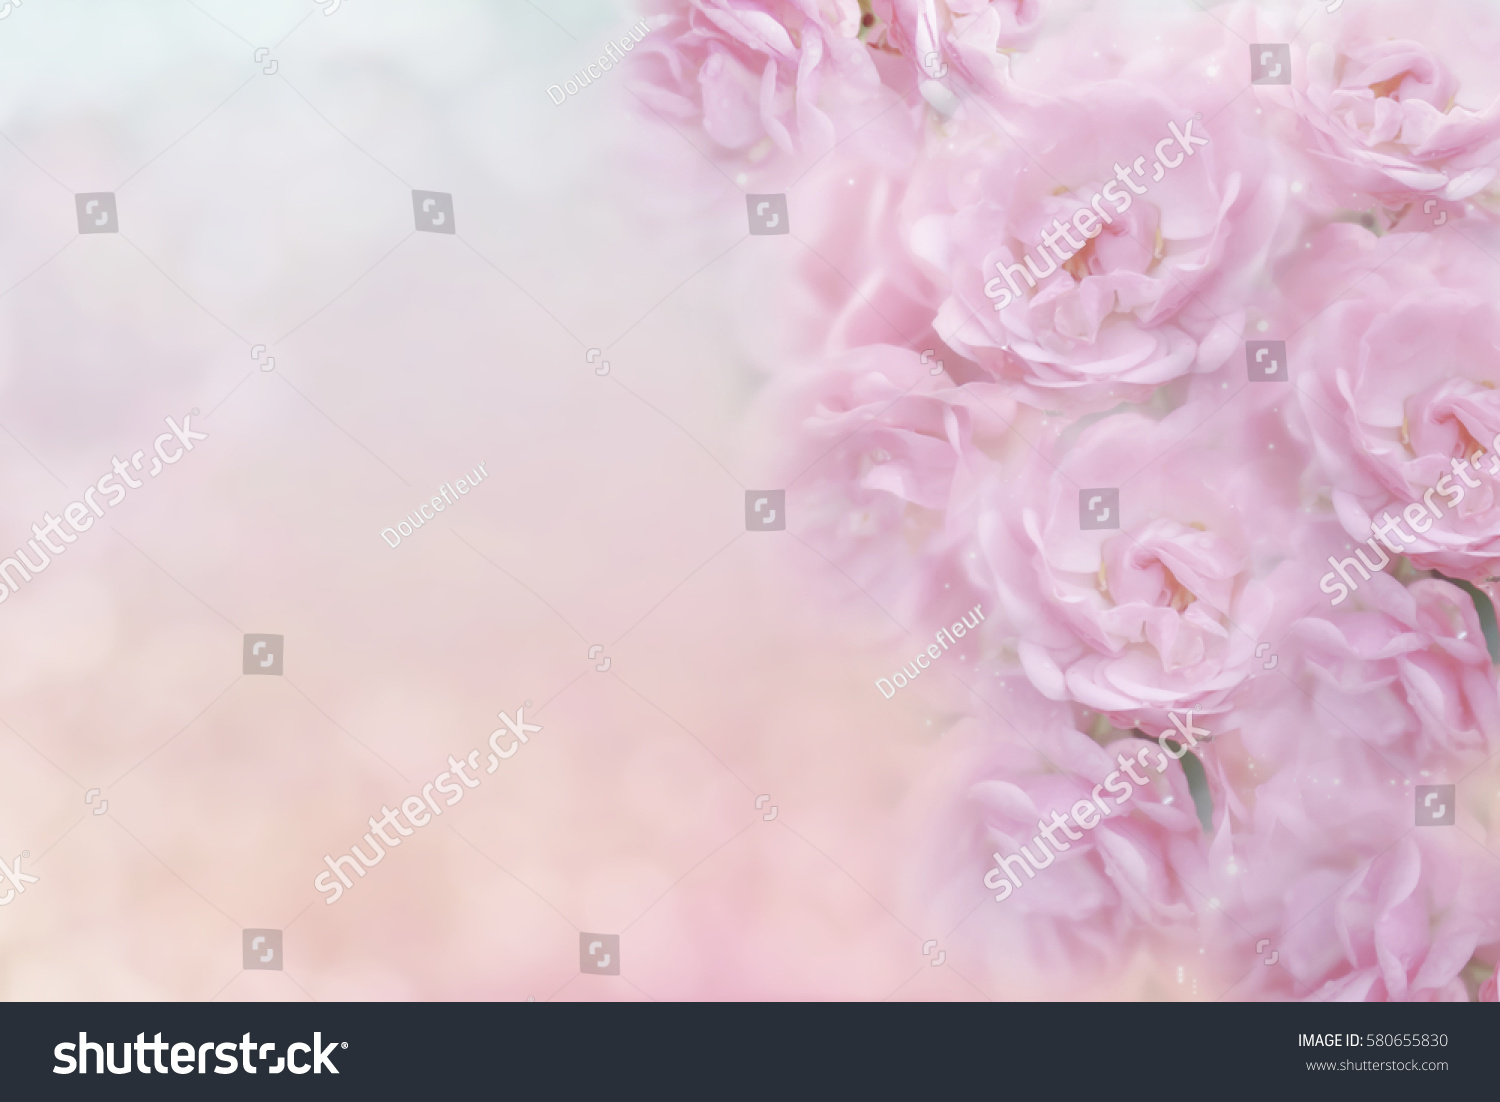 Soft Pink Roses Flower Vintage Color Stock Photo Royalty Free 580655830